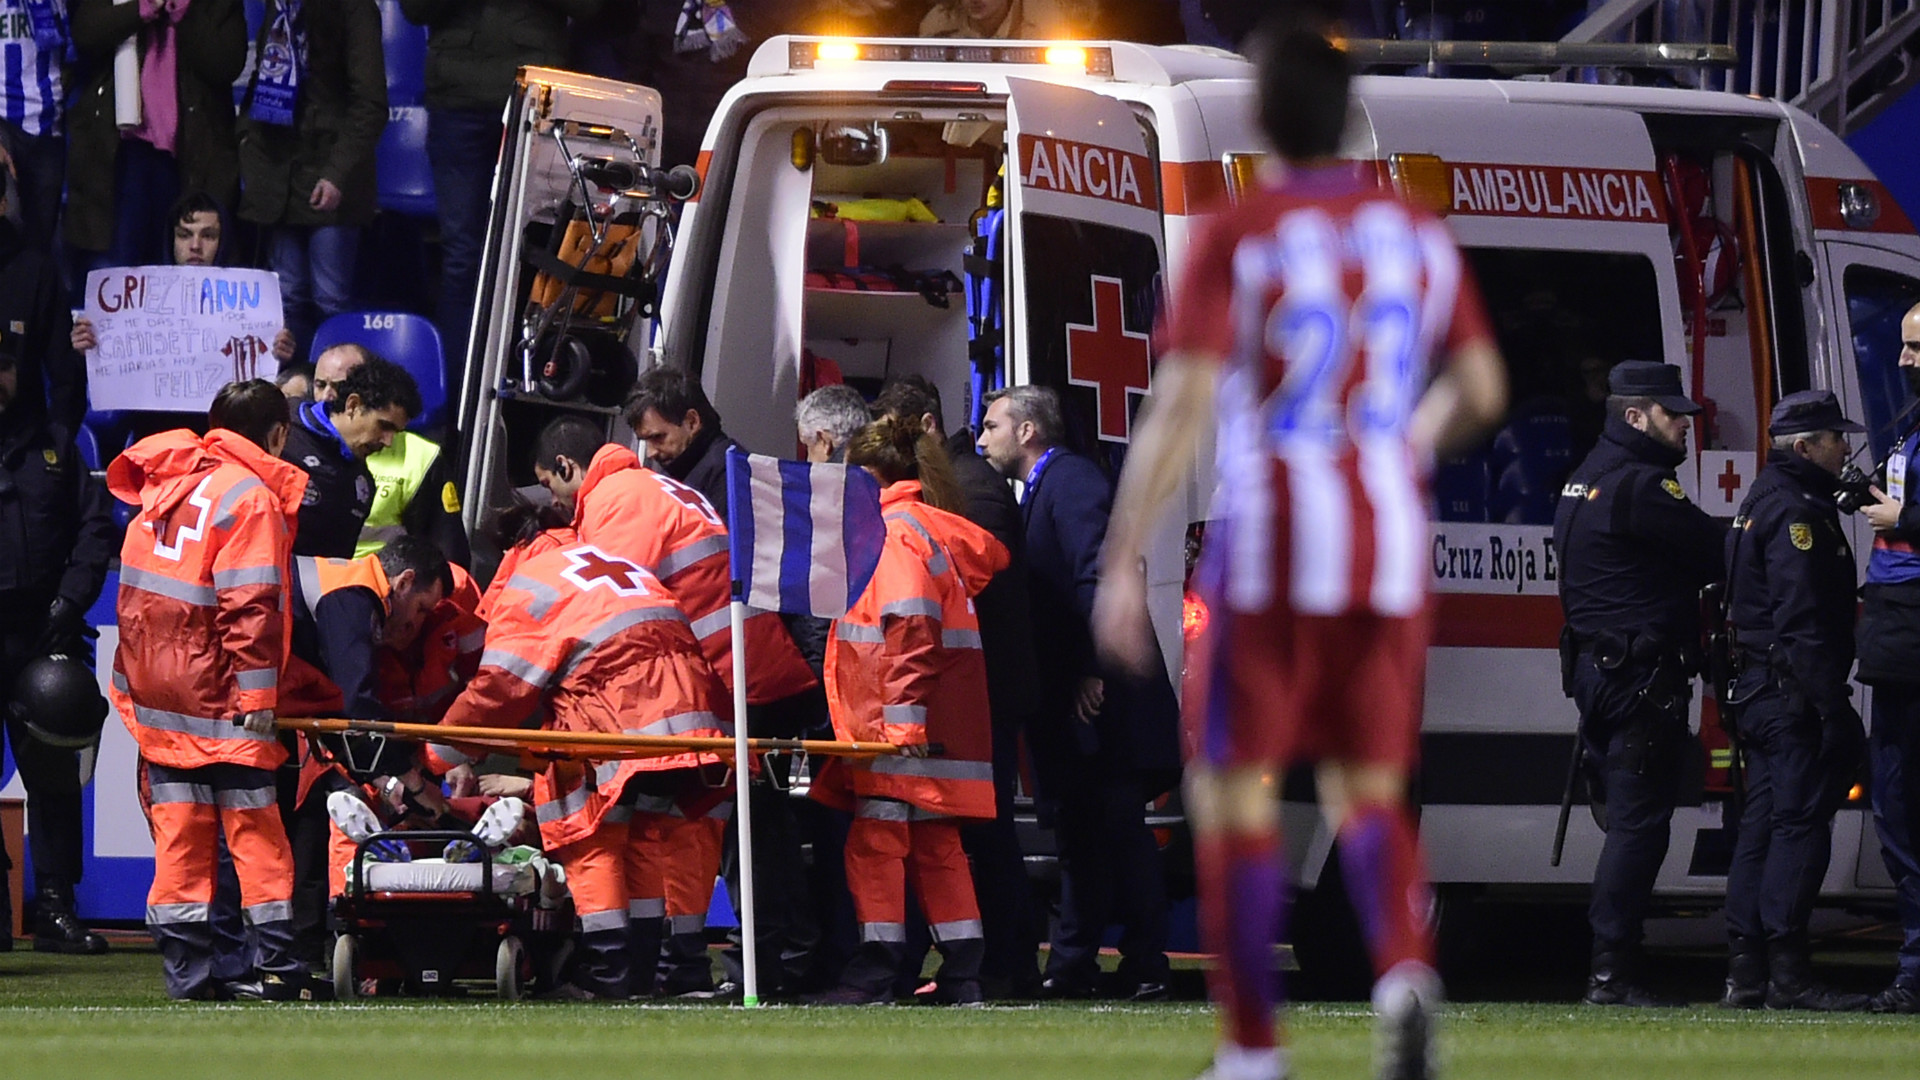 Fernando Torres stretchered off after sickening head clash